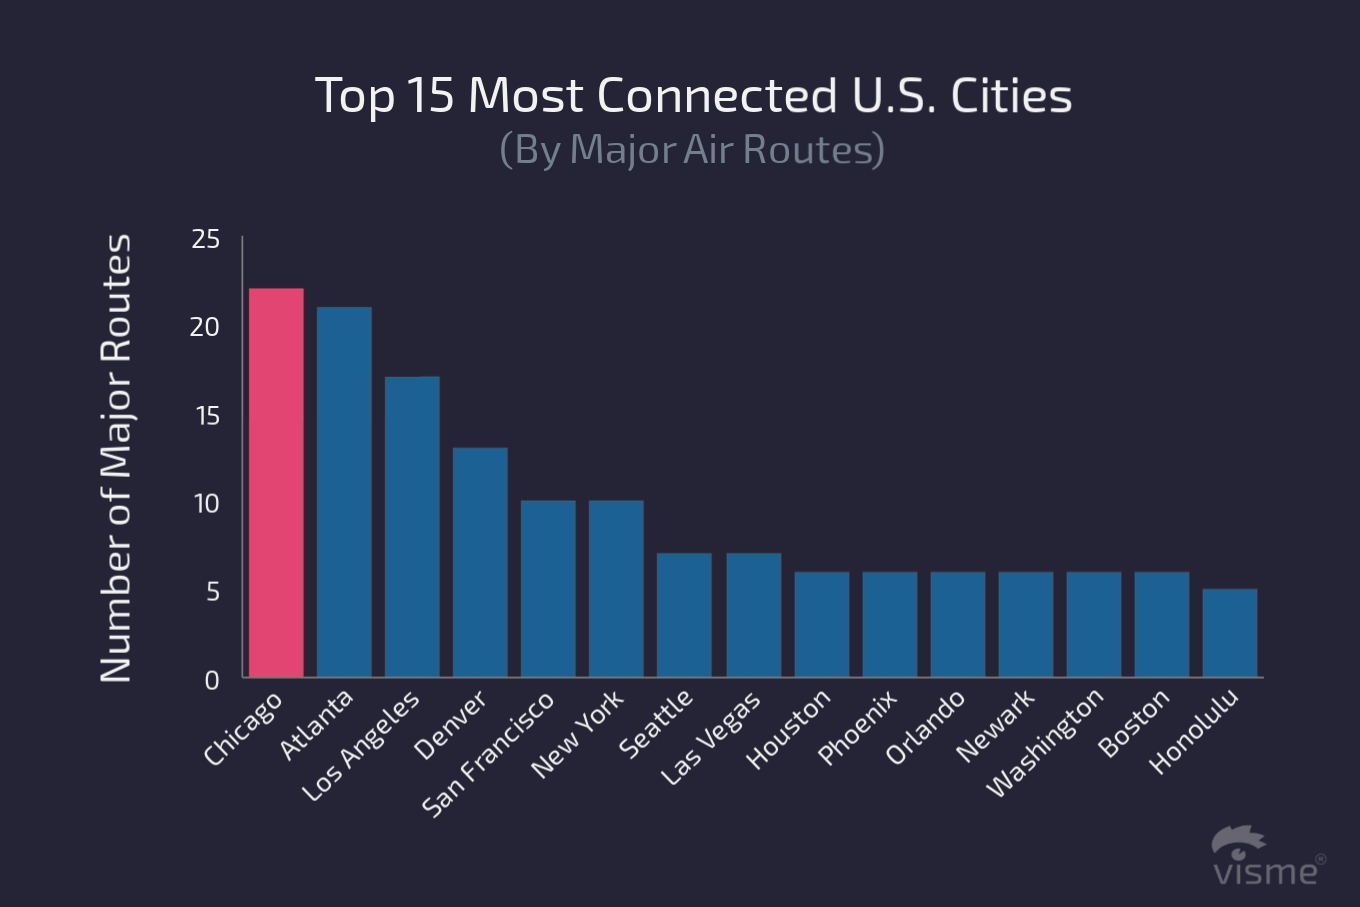 17 Charts on the State of the U.S. Airline Industry in 2017 top 15 most connected us cities flight on time performance